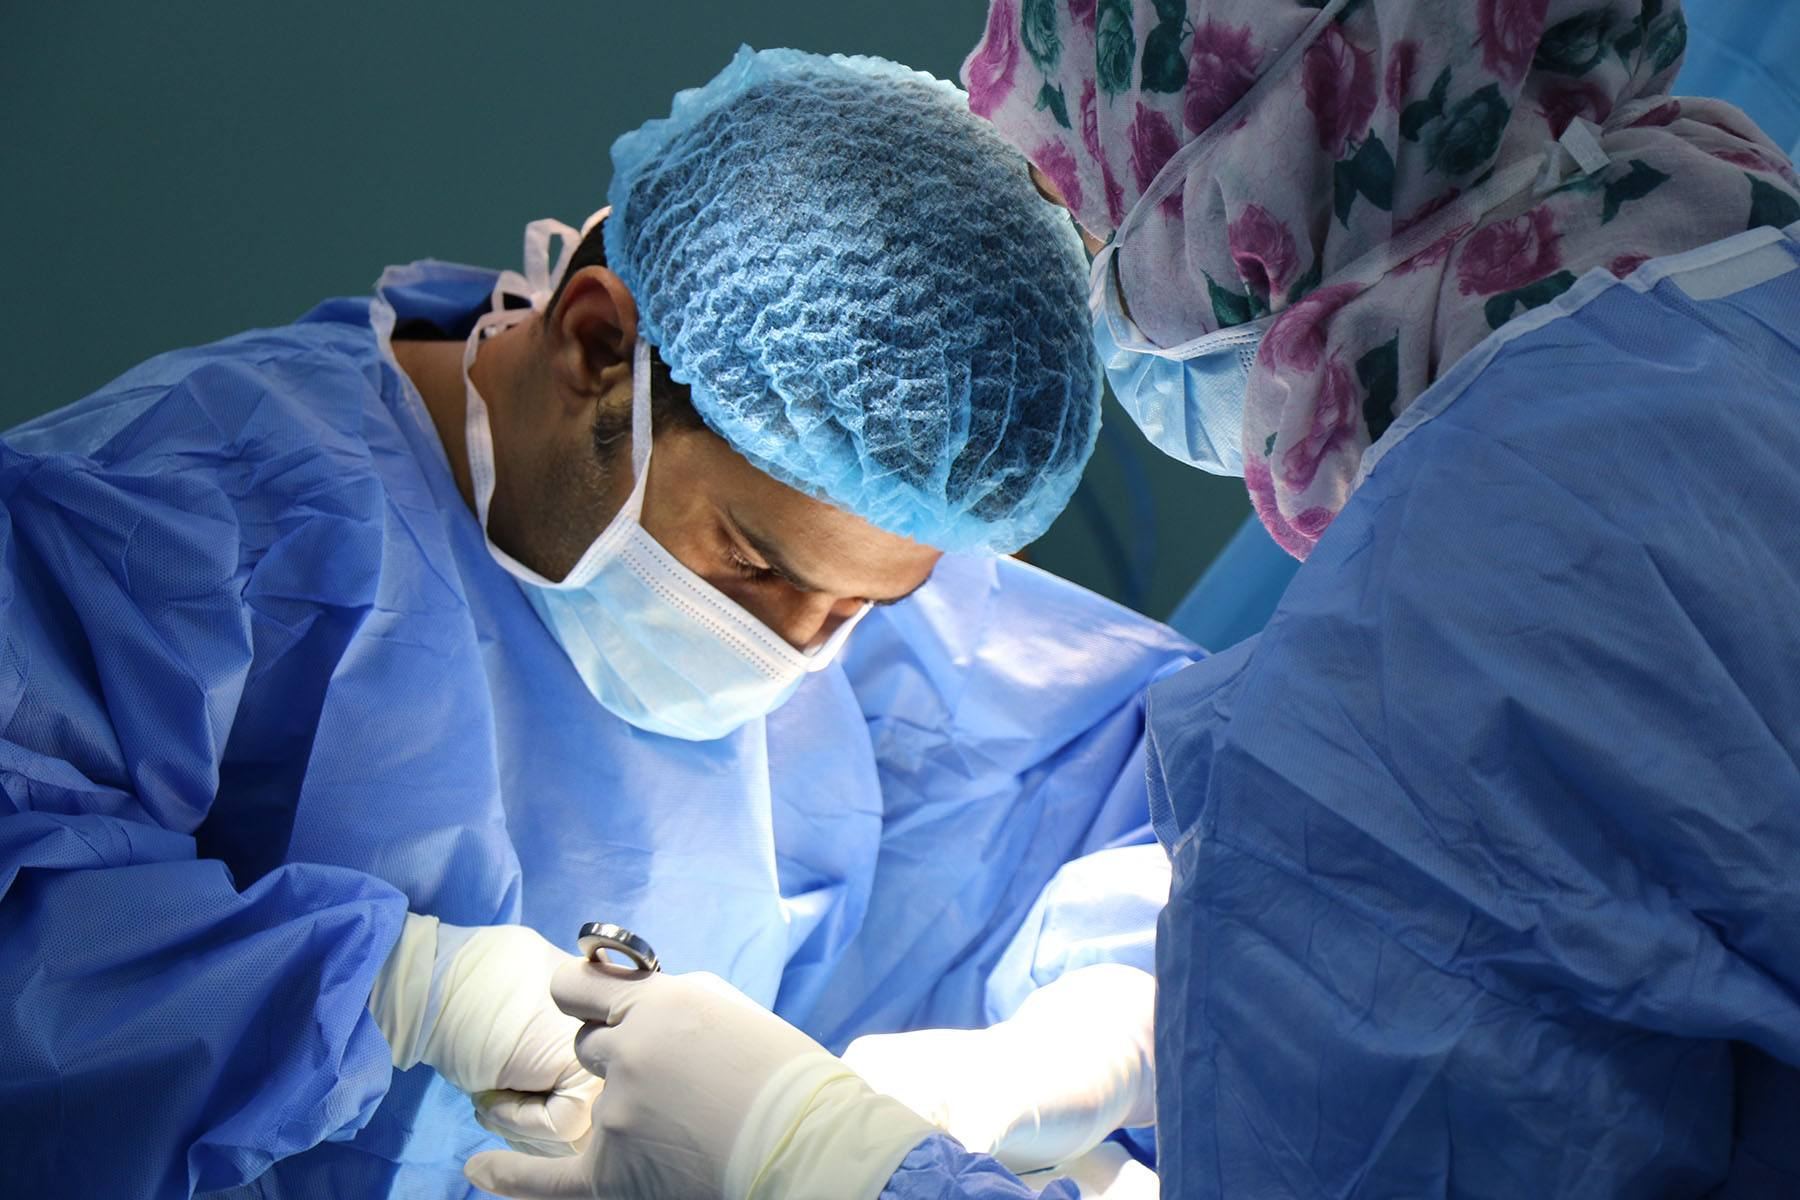 Preparing for surgery? What you need to know